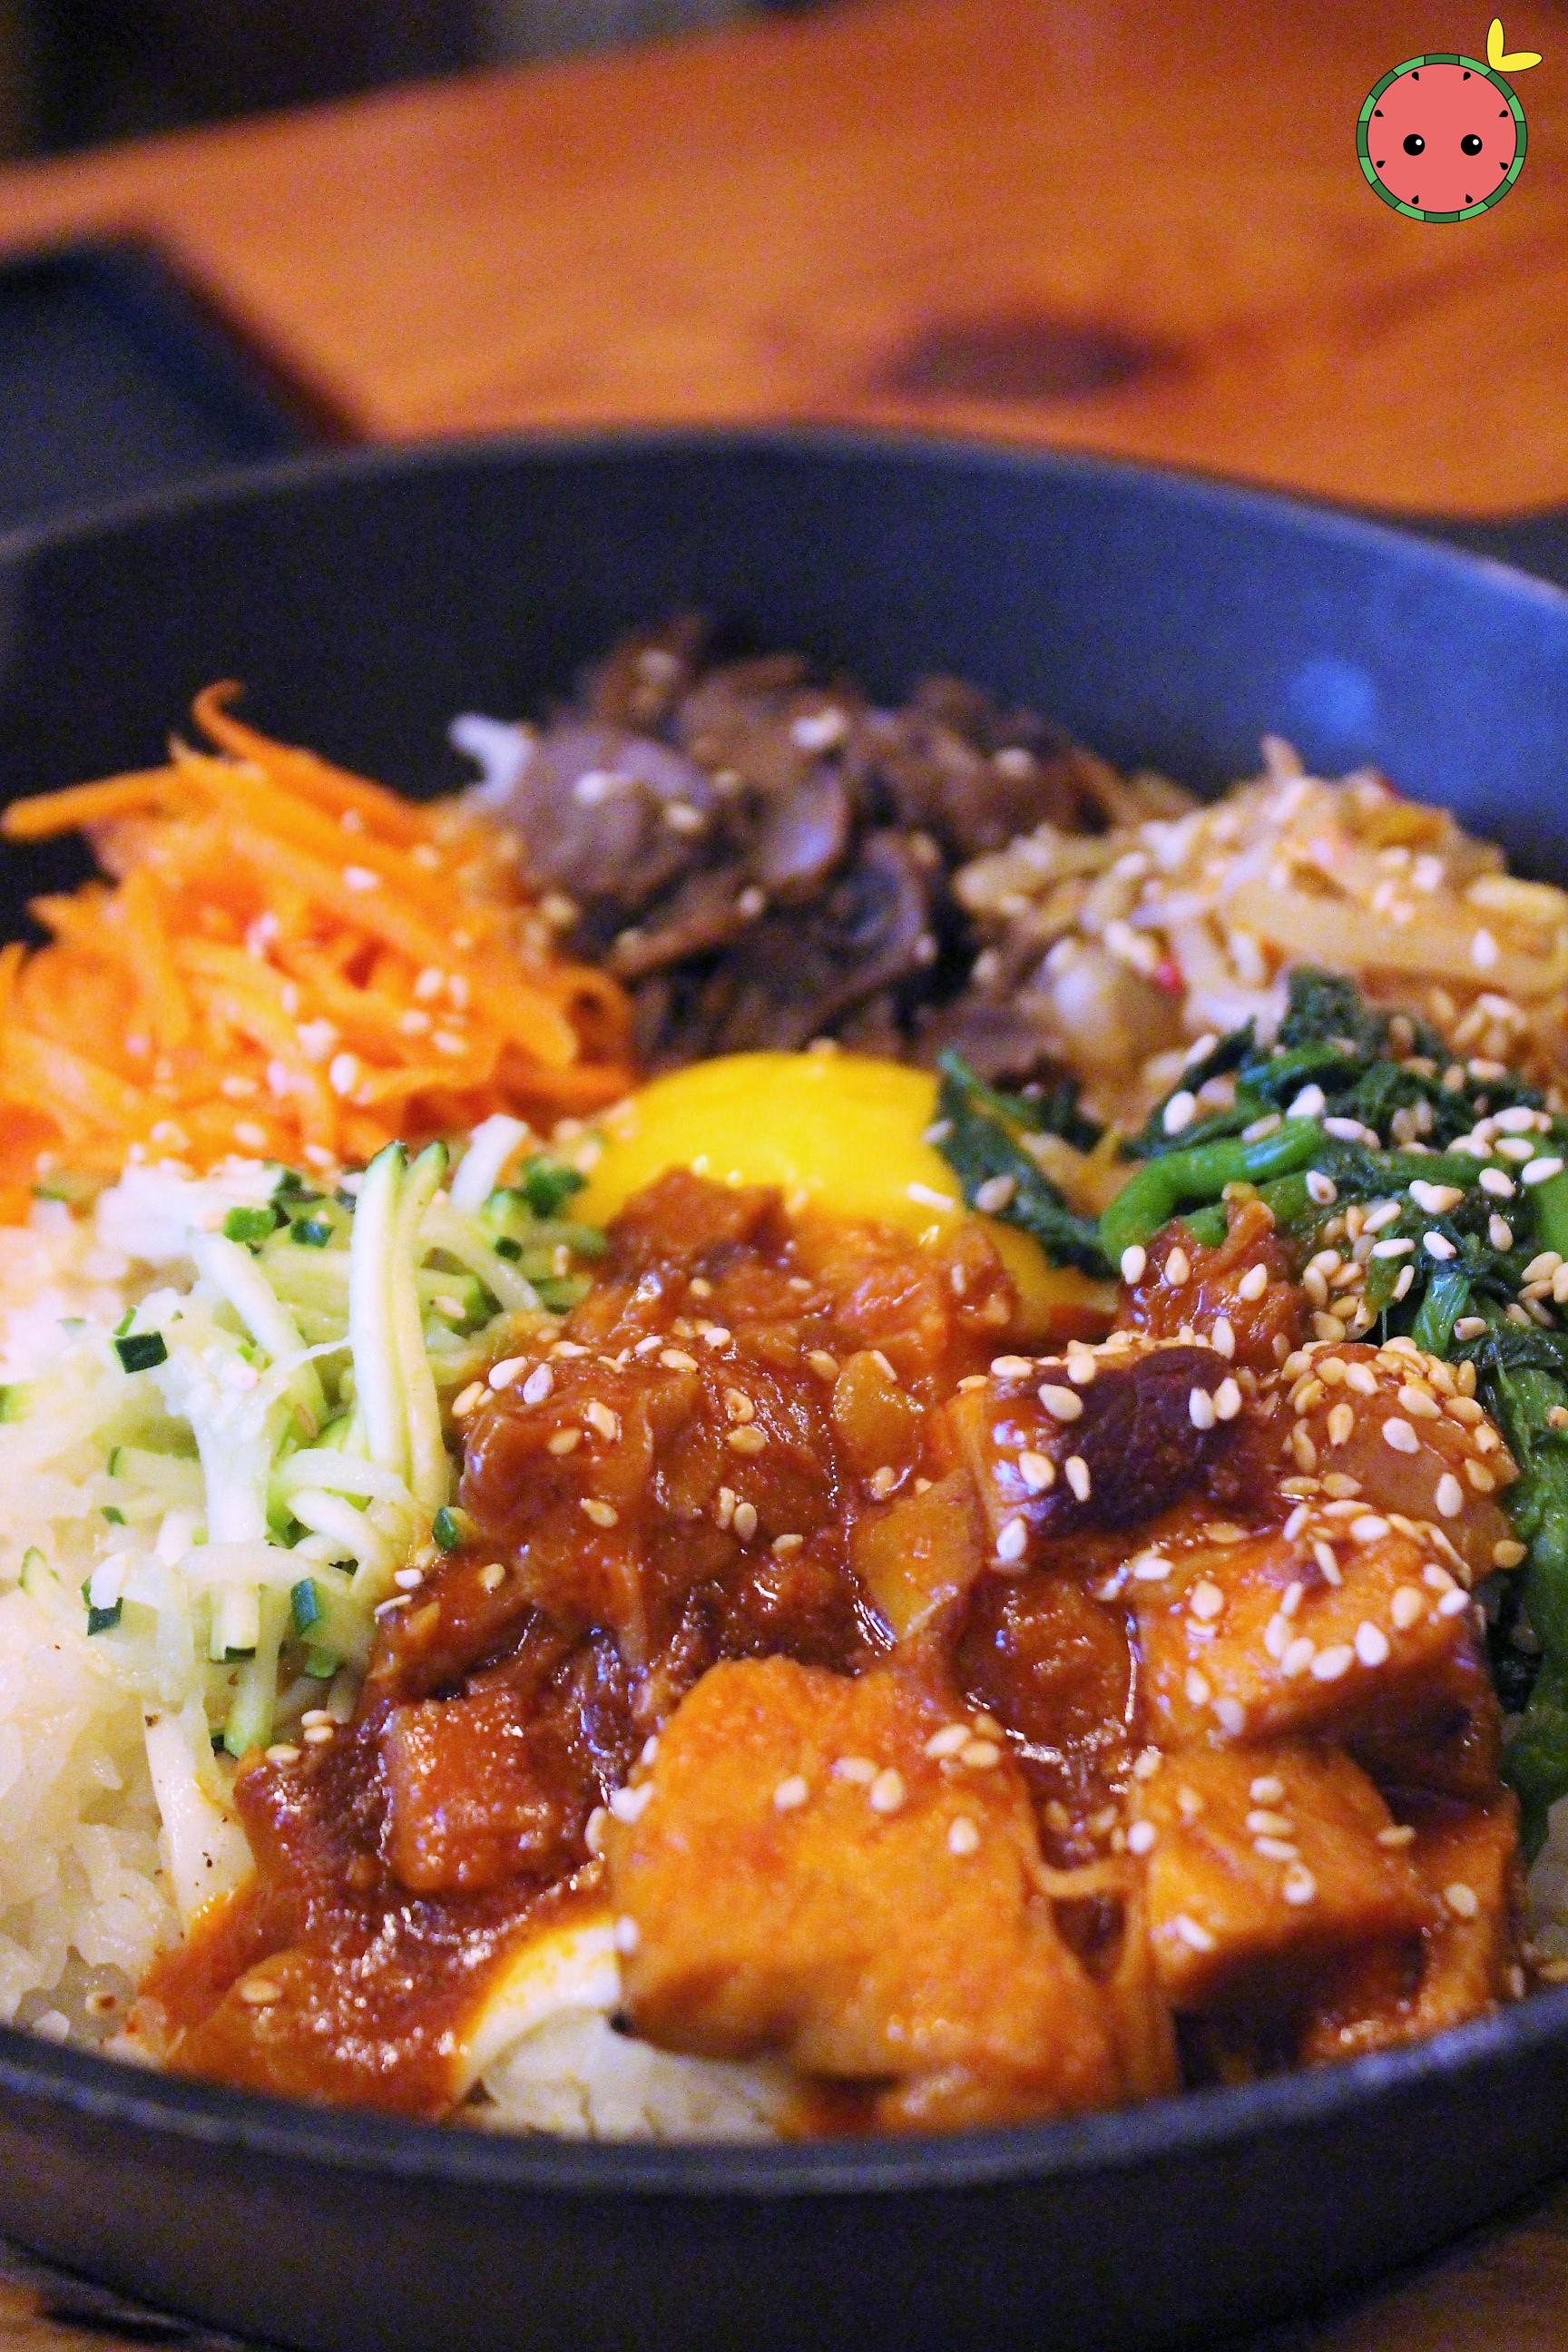 Spicy Pork Bibim-Bap - Traditional korean rice dish with pork, marinated vegetables, jidori fried eg